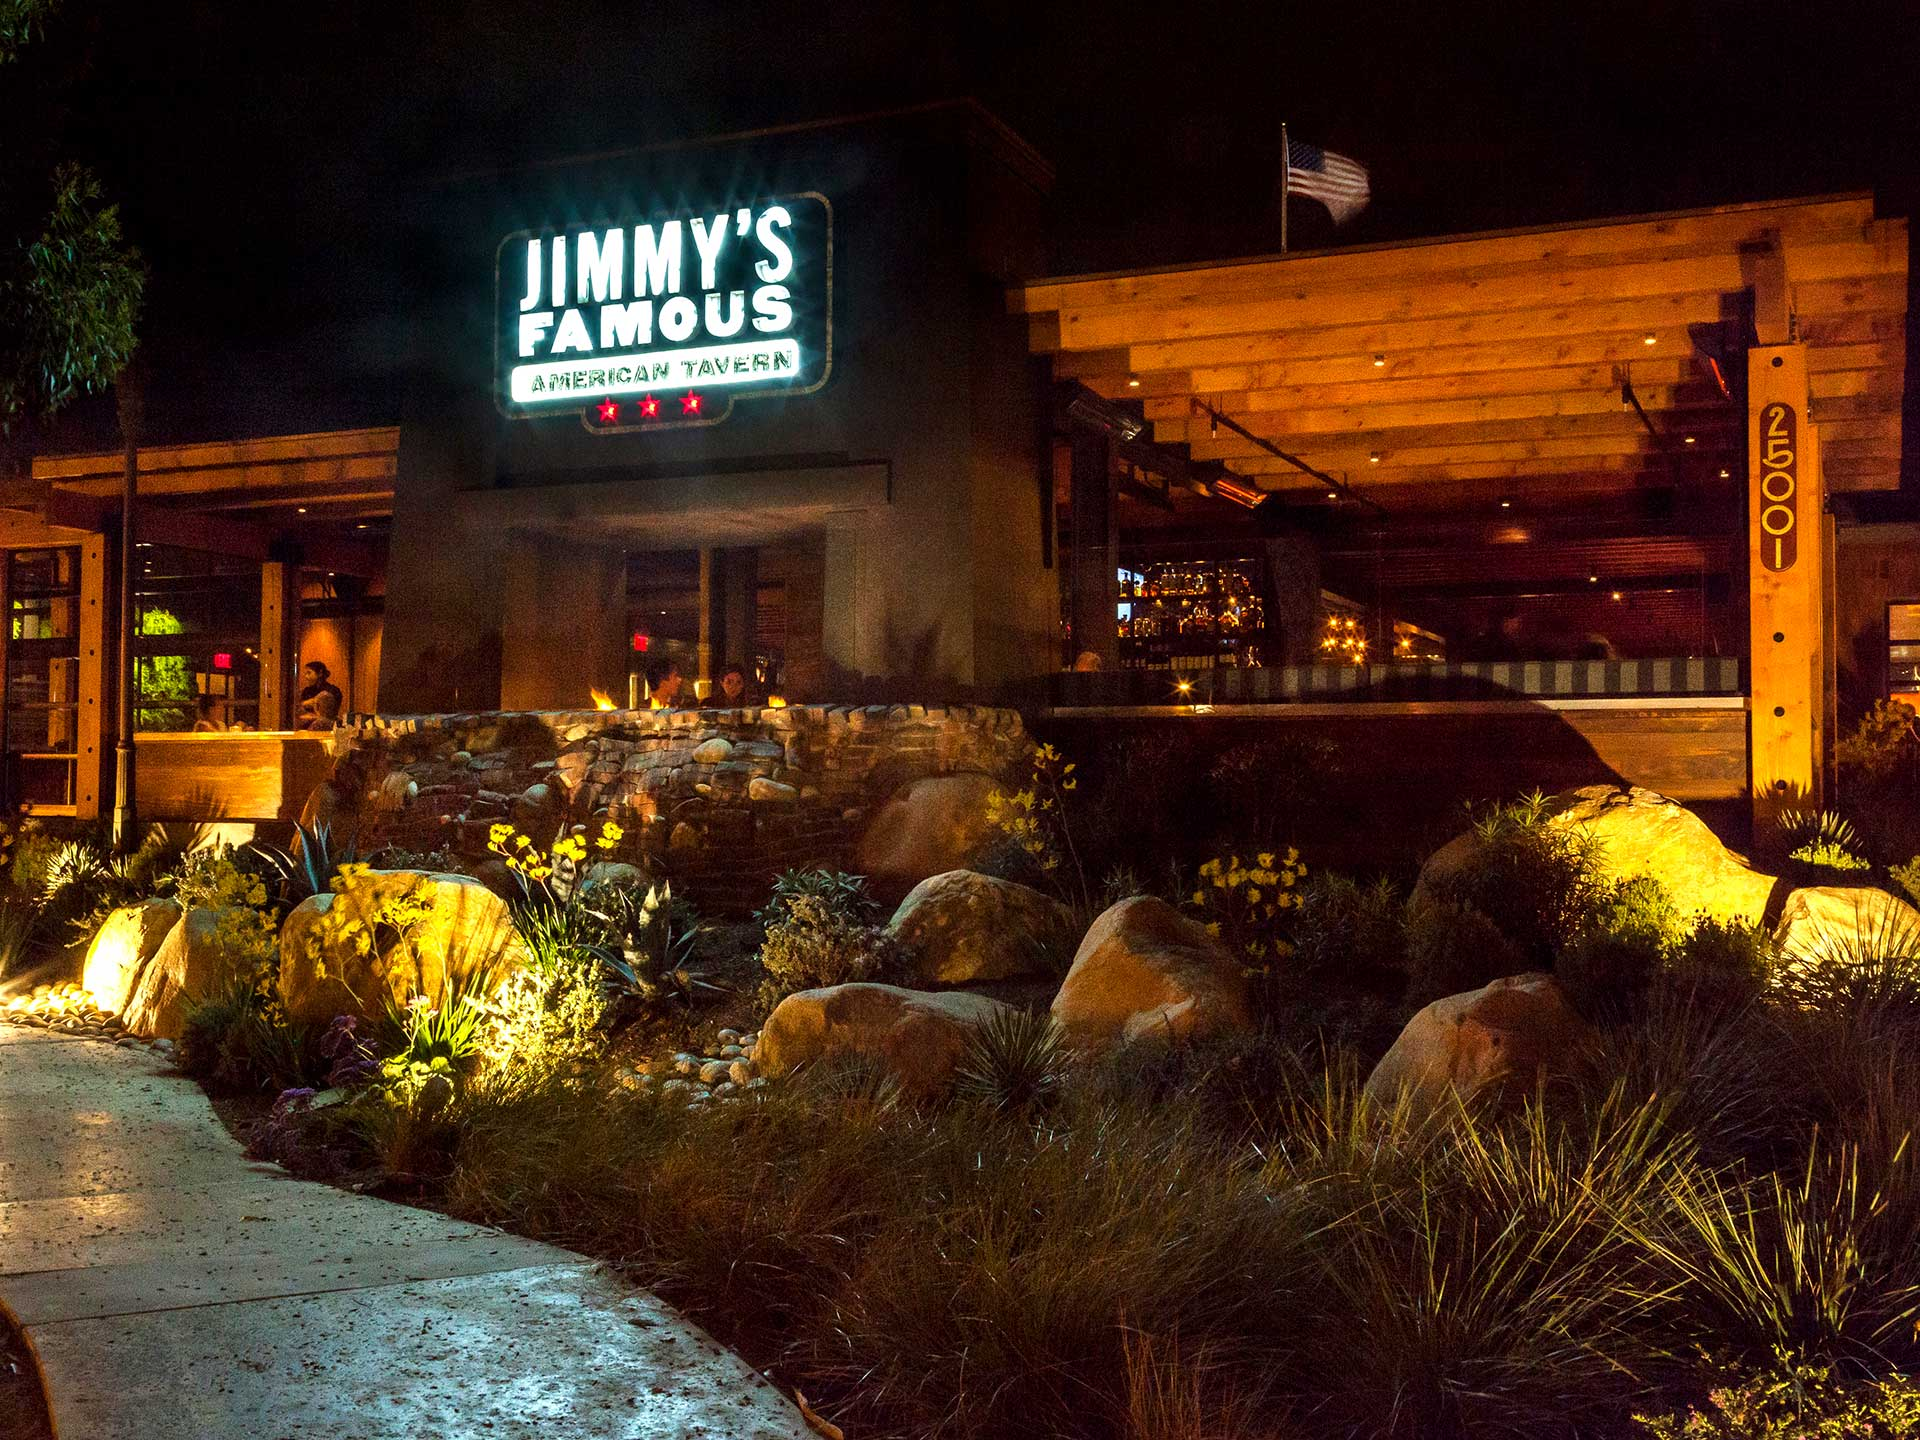 Jimmy's Dana Point offers an indoor/outdoor experience at Dana Wharf